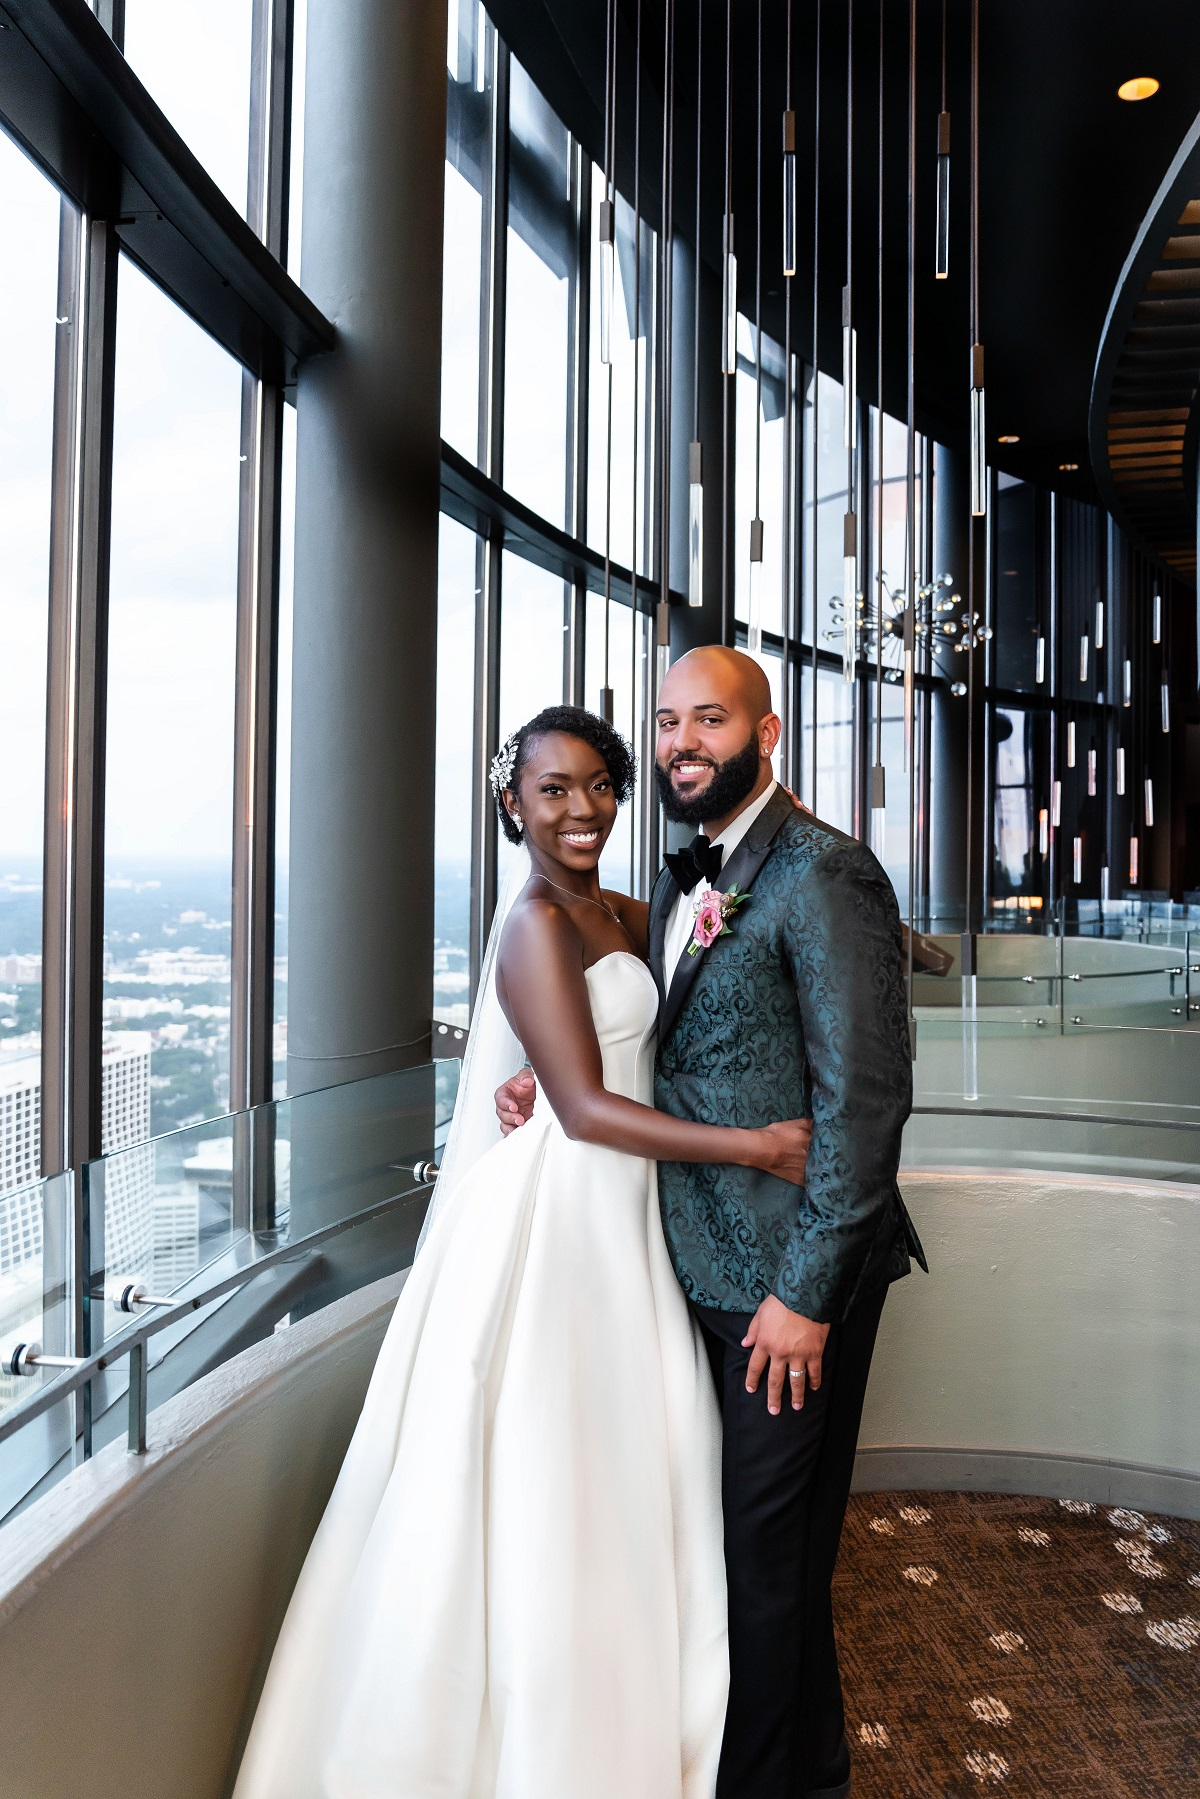 Briana Morris and Vincent Morales in their wedding photo on 'Married at First Sight'